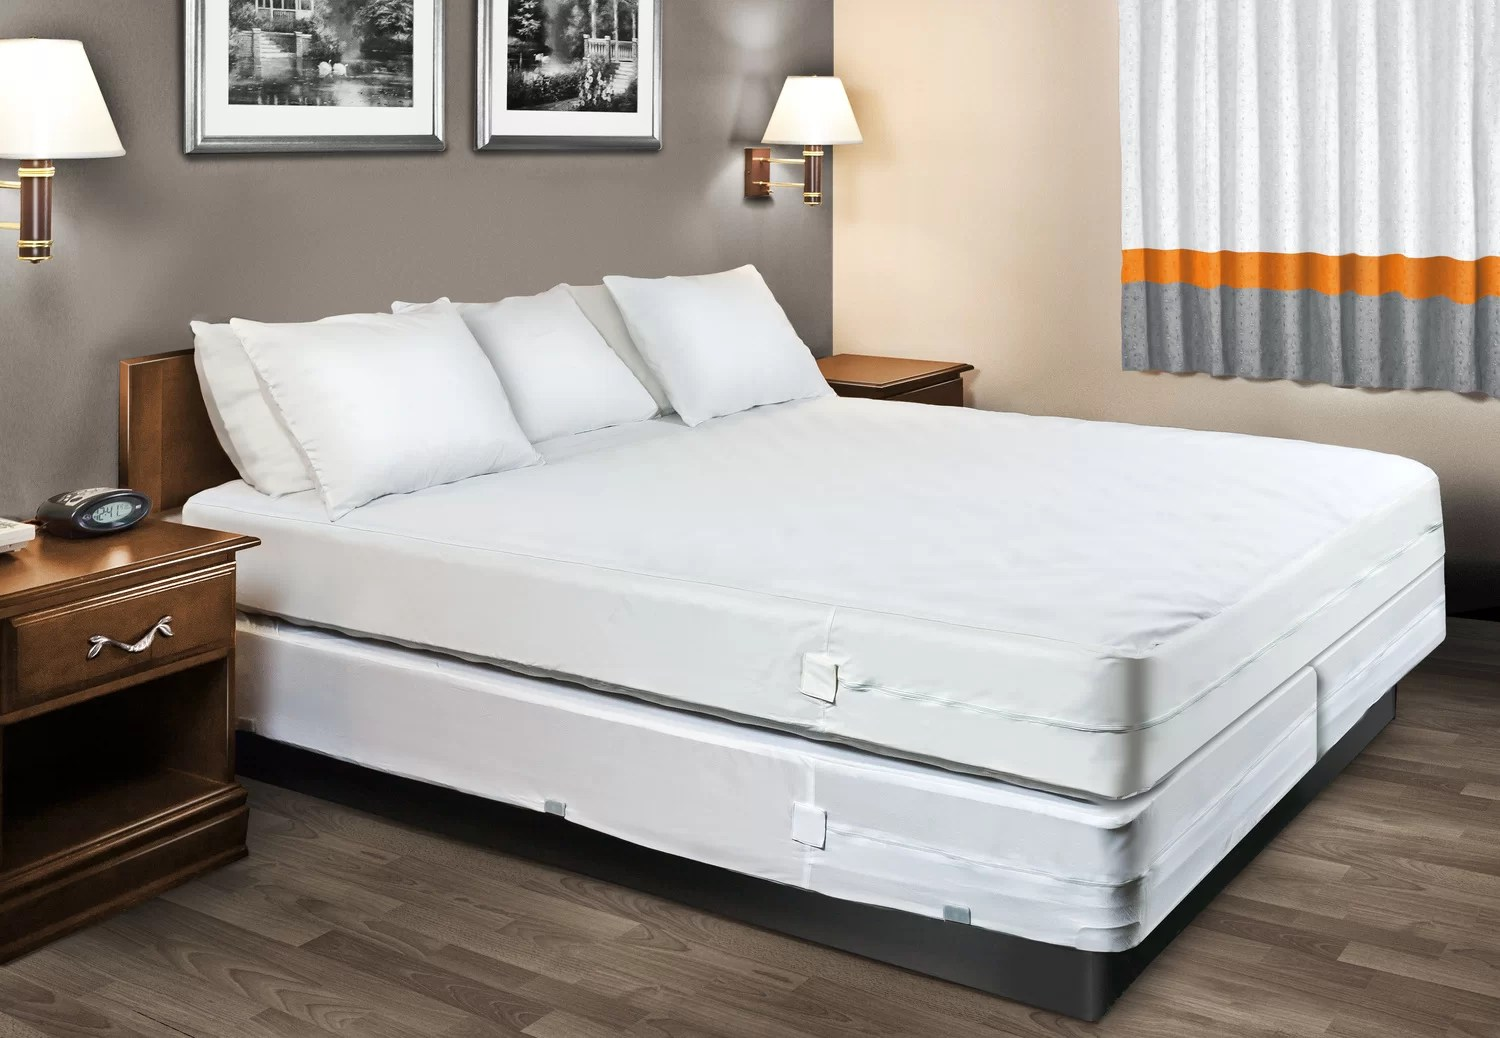 Bed Bugs Mattress Cover Beckett Sleep Defense System Hypoallergenic And Waterproof Mattress Cover